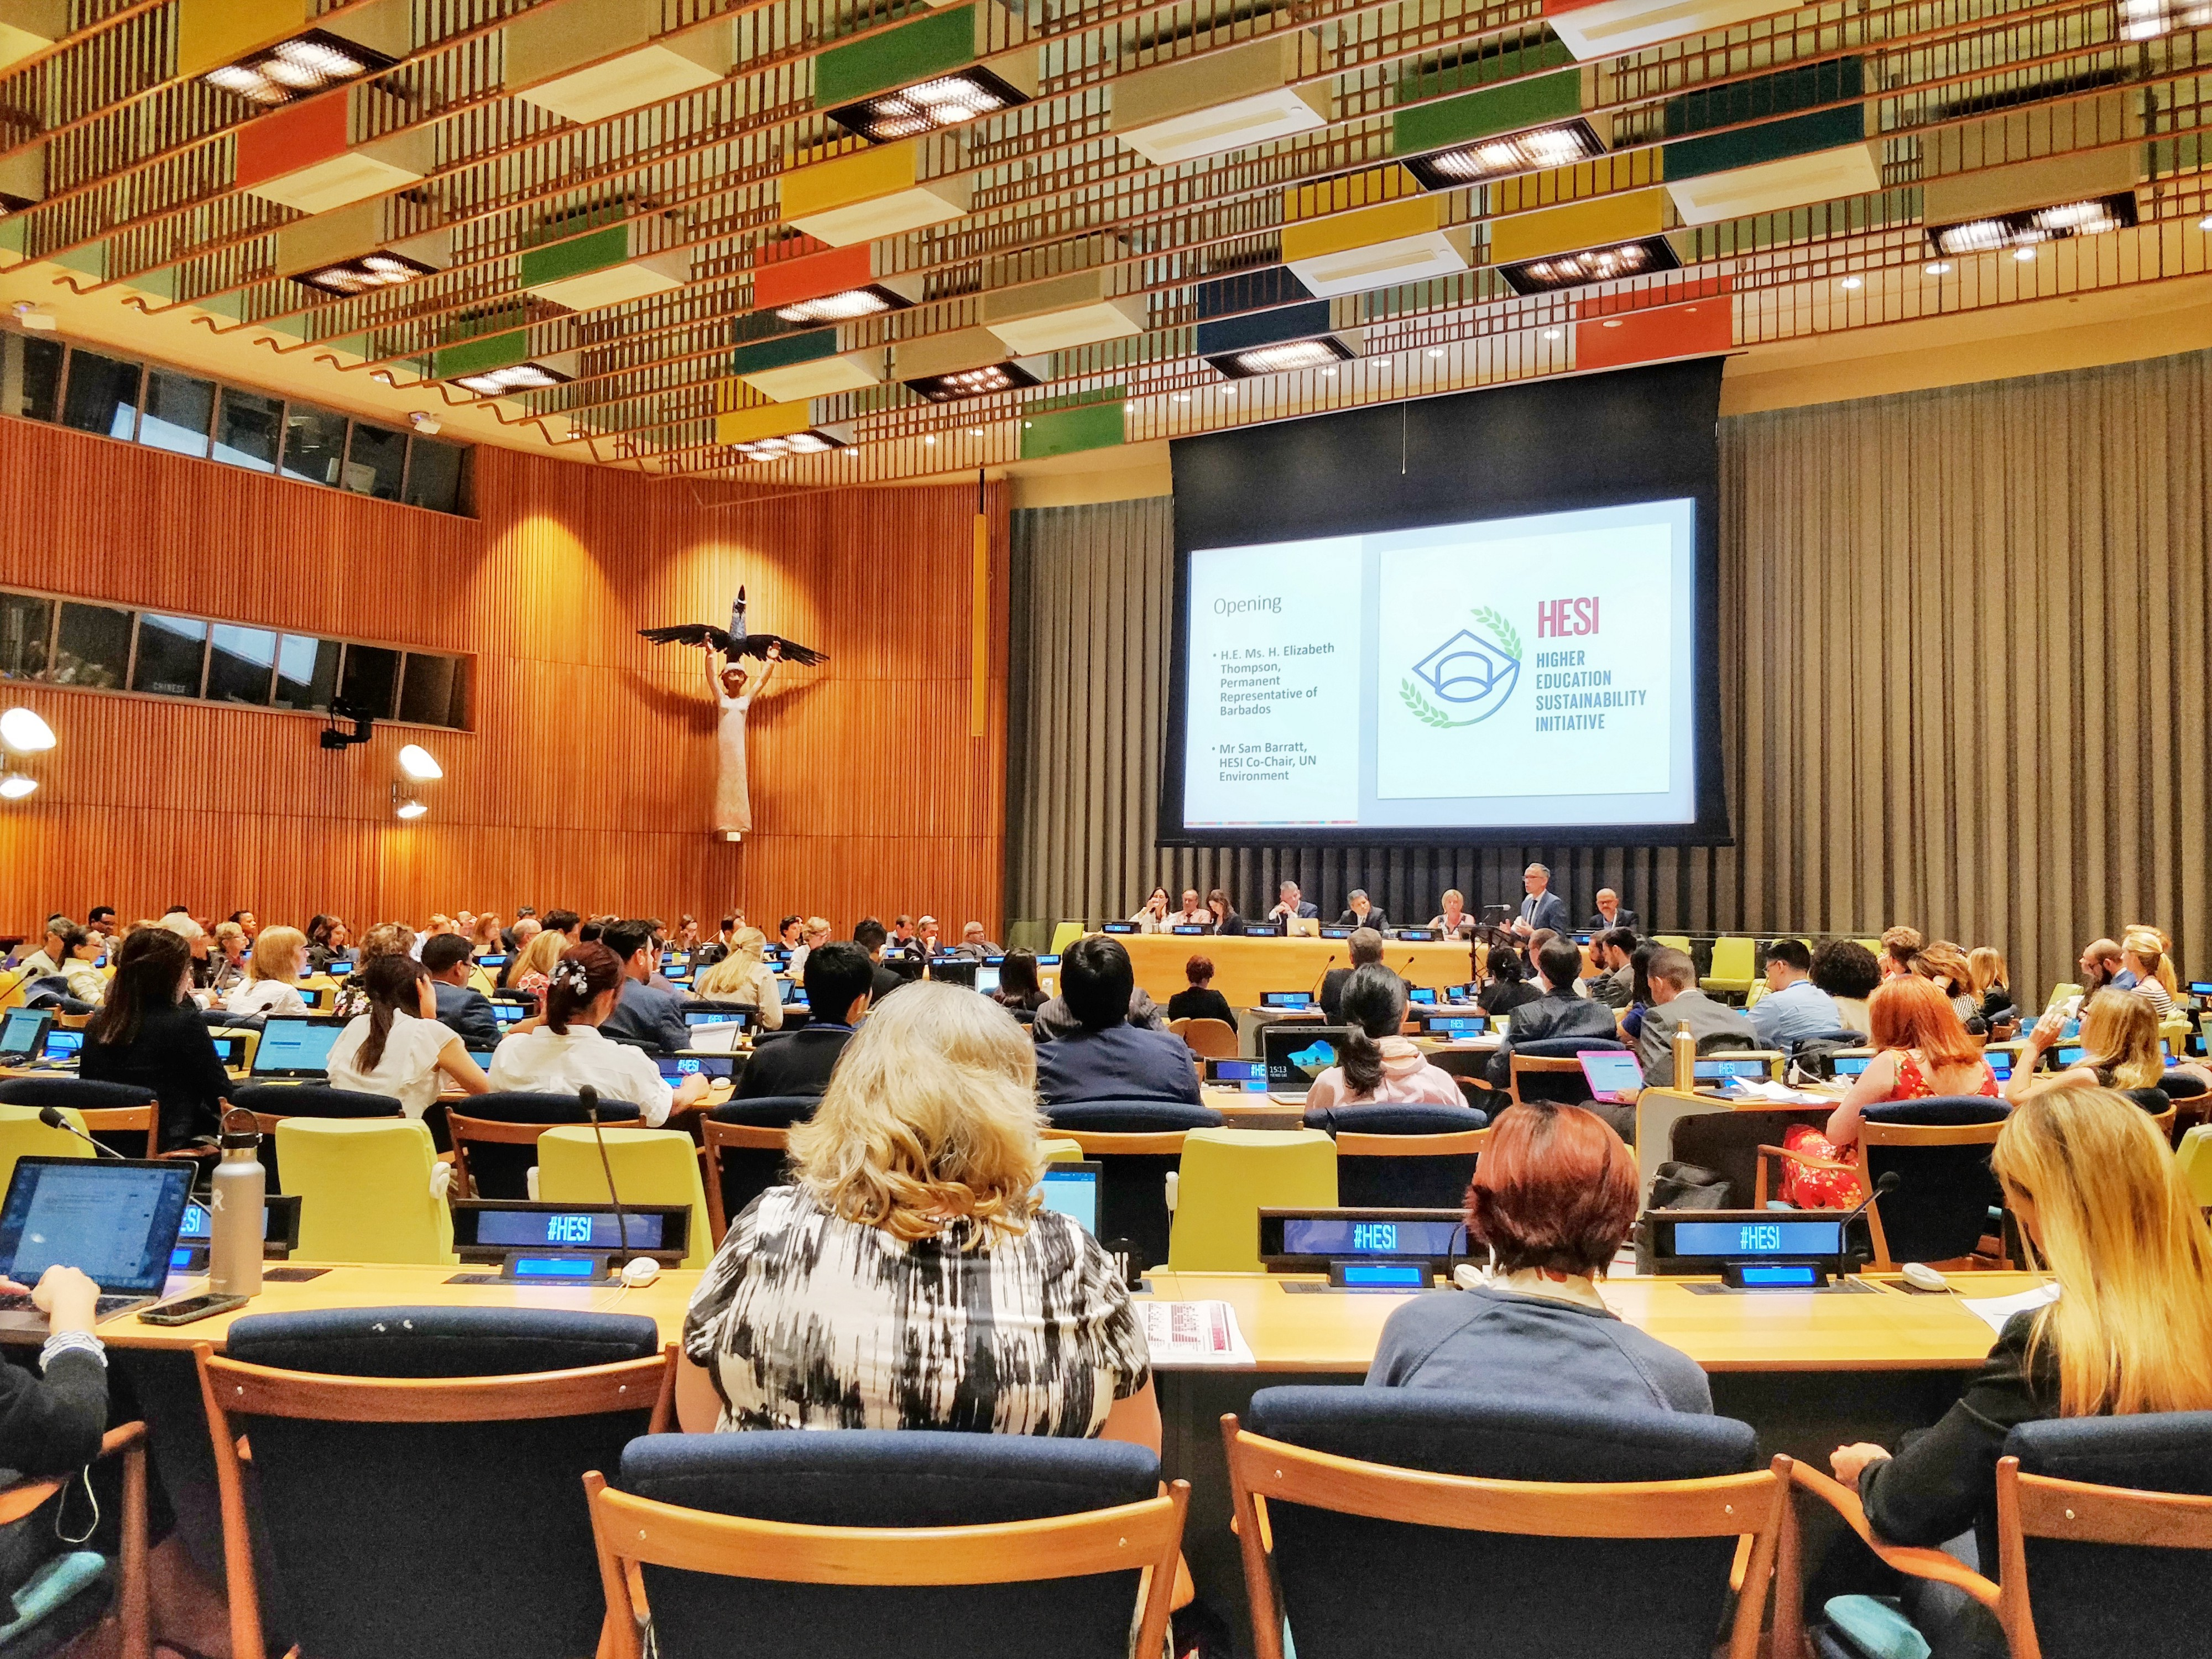 Ycenter at United Nations HESI SDG event